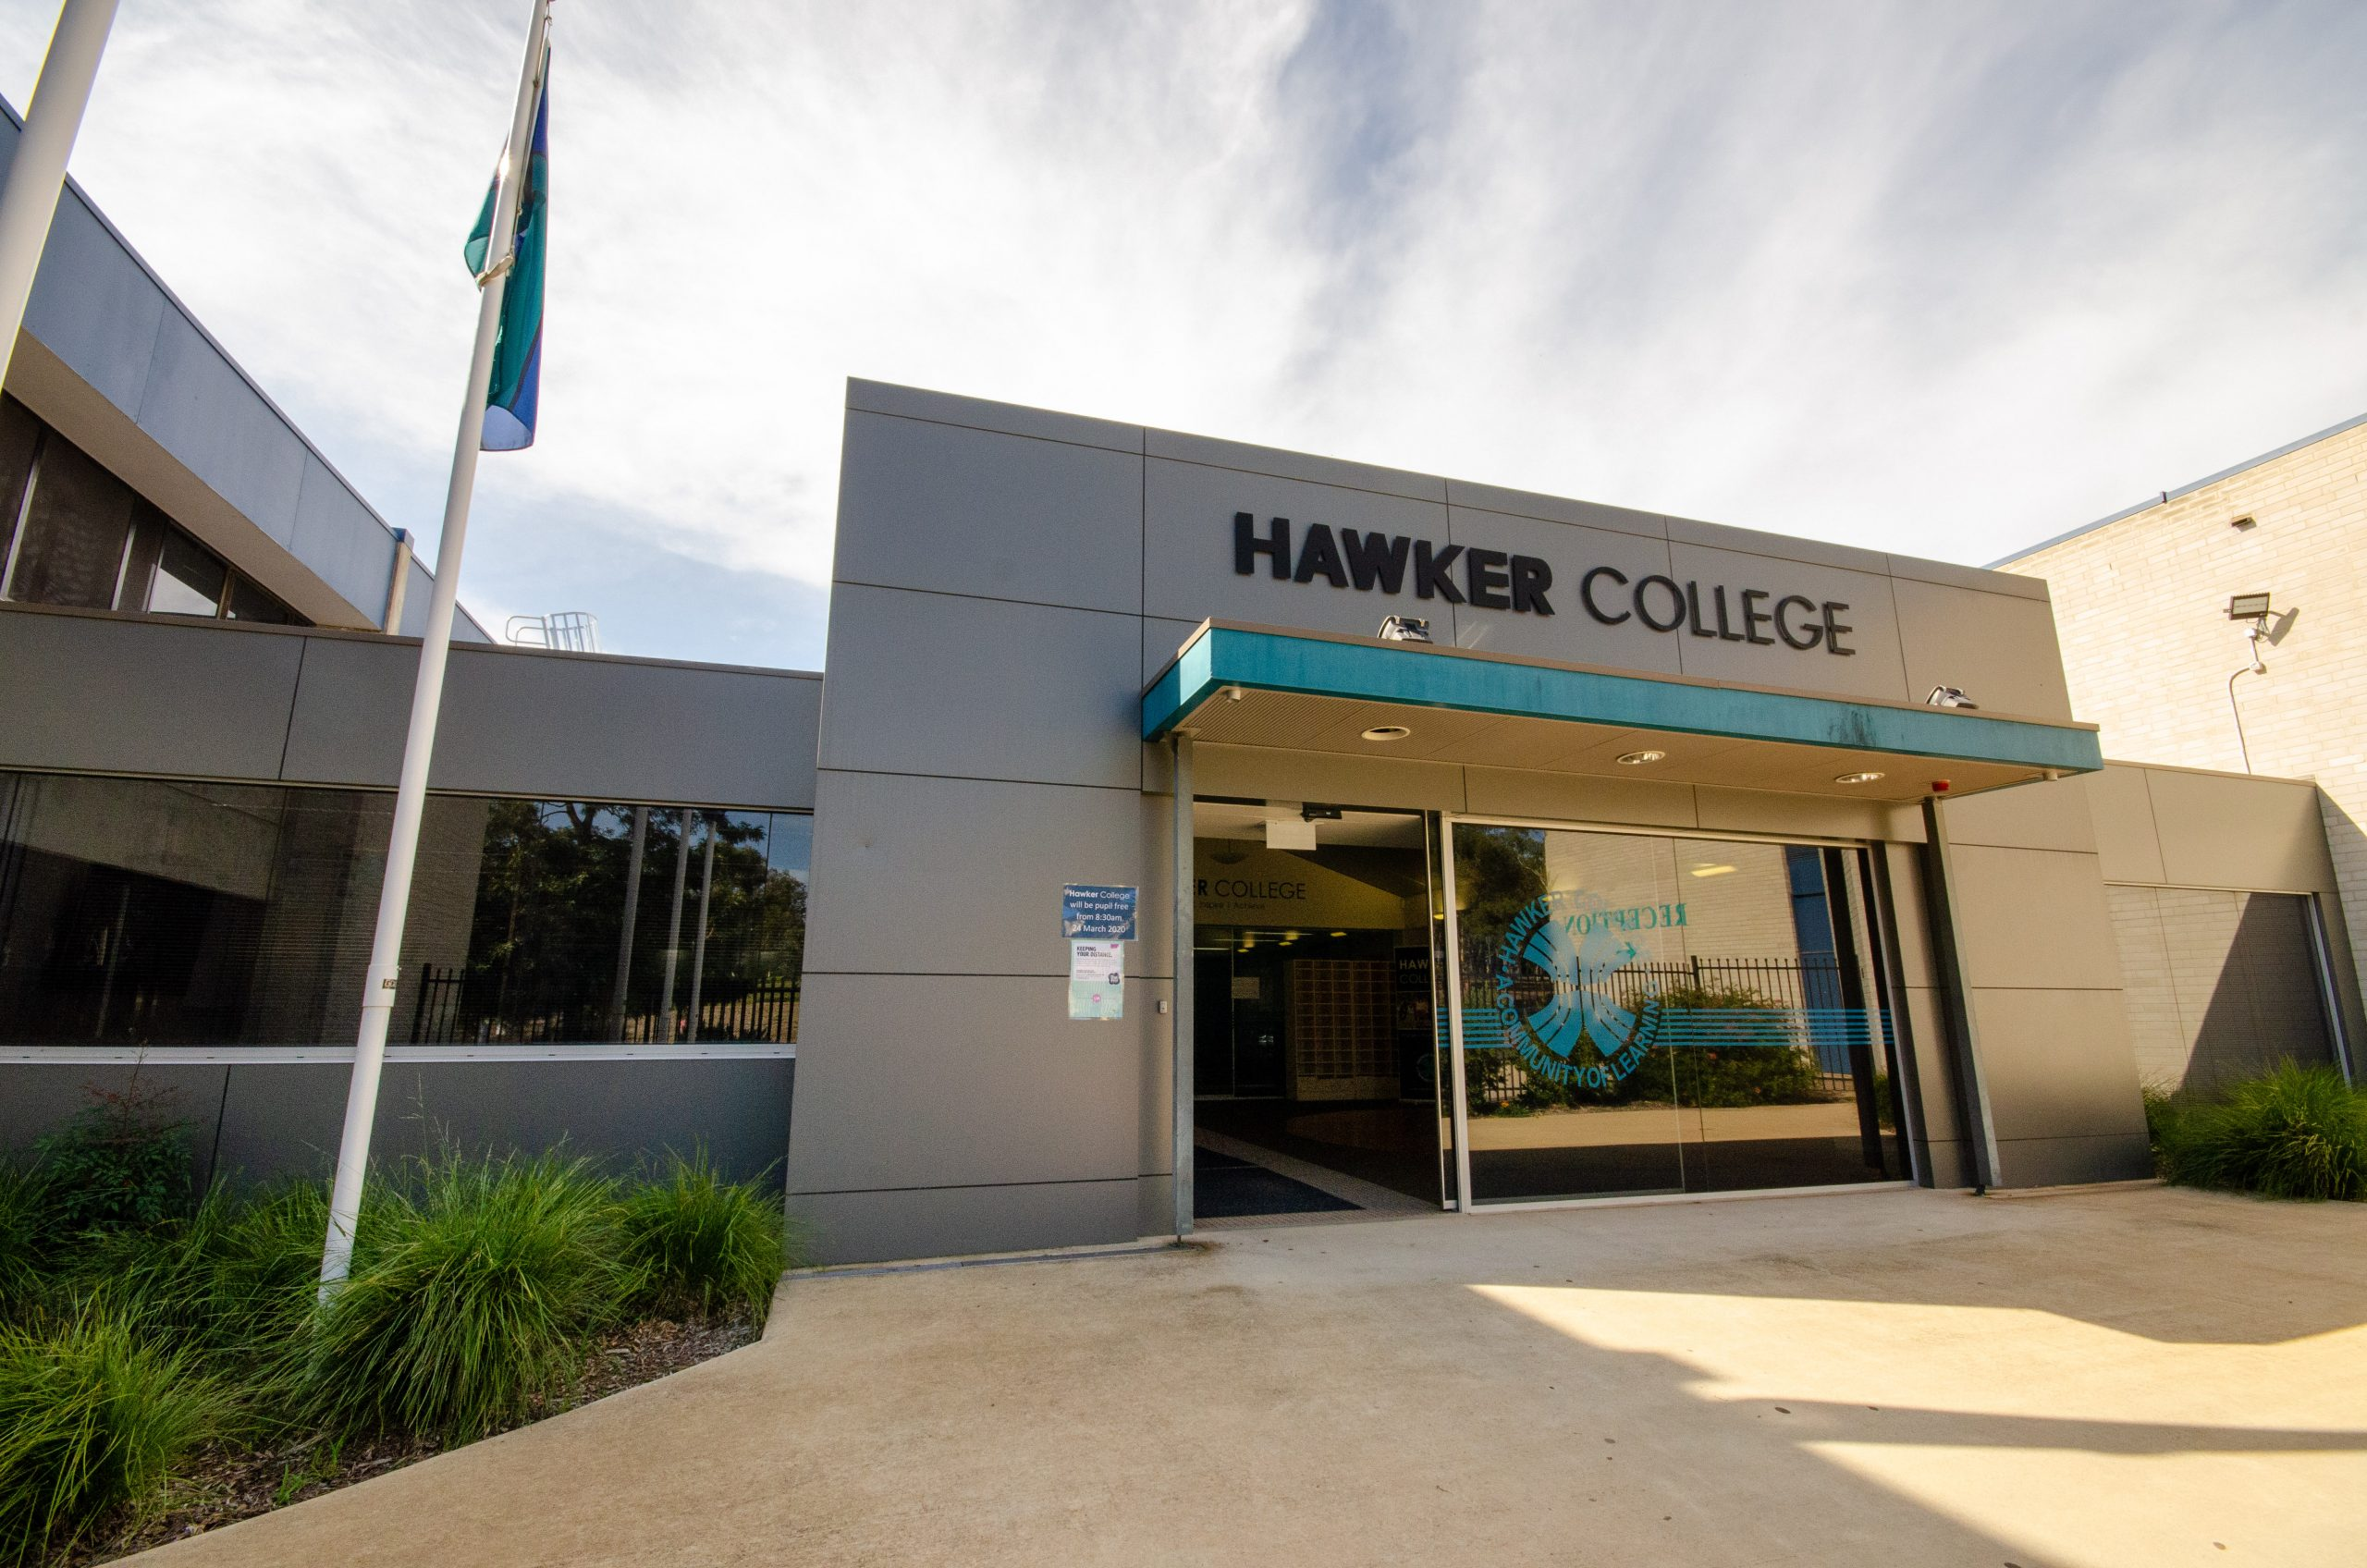 Hawker College Front Entrance